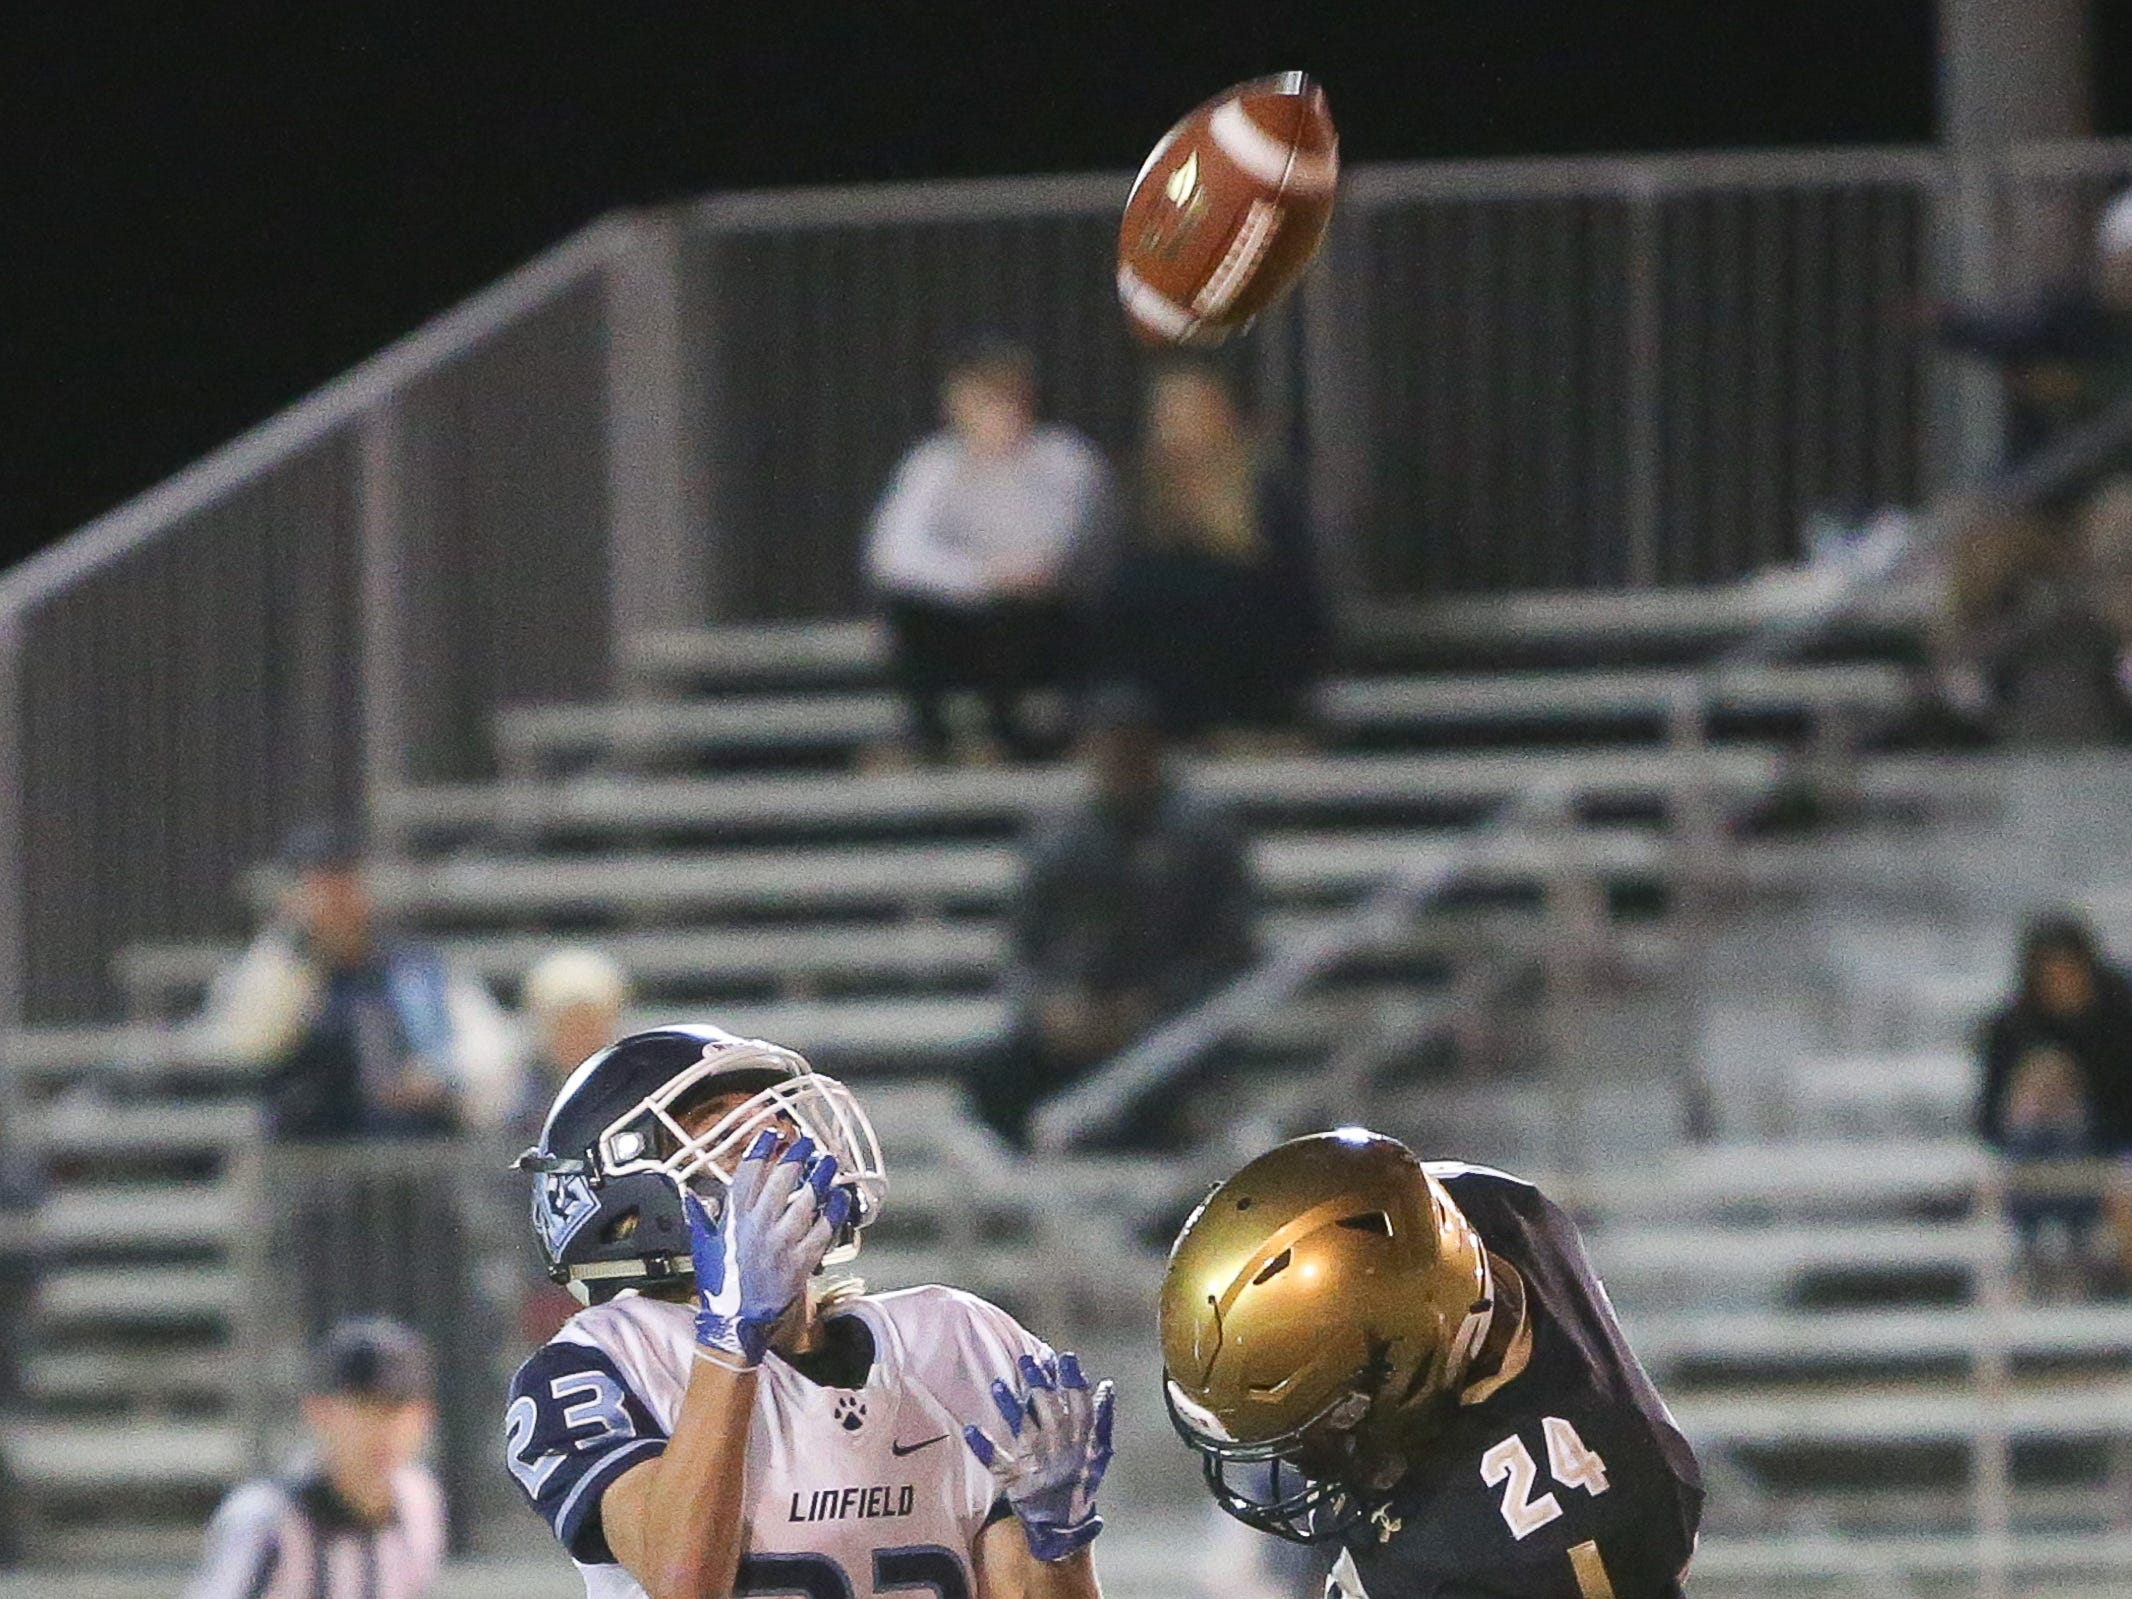 Michael Harkins with the fair catch. The Xavier Prep varsity football team lost Friday's neutral playoff game against Linfield Christian by a score of 57-13.